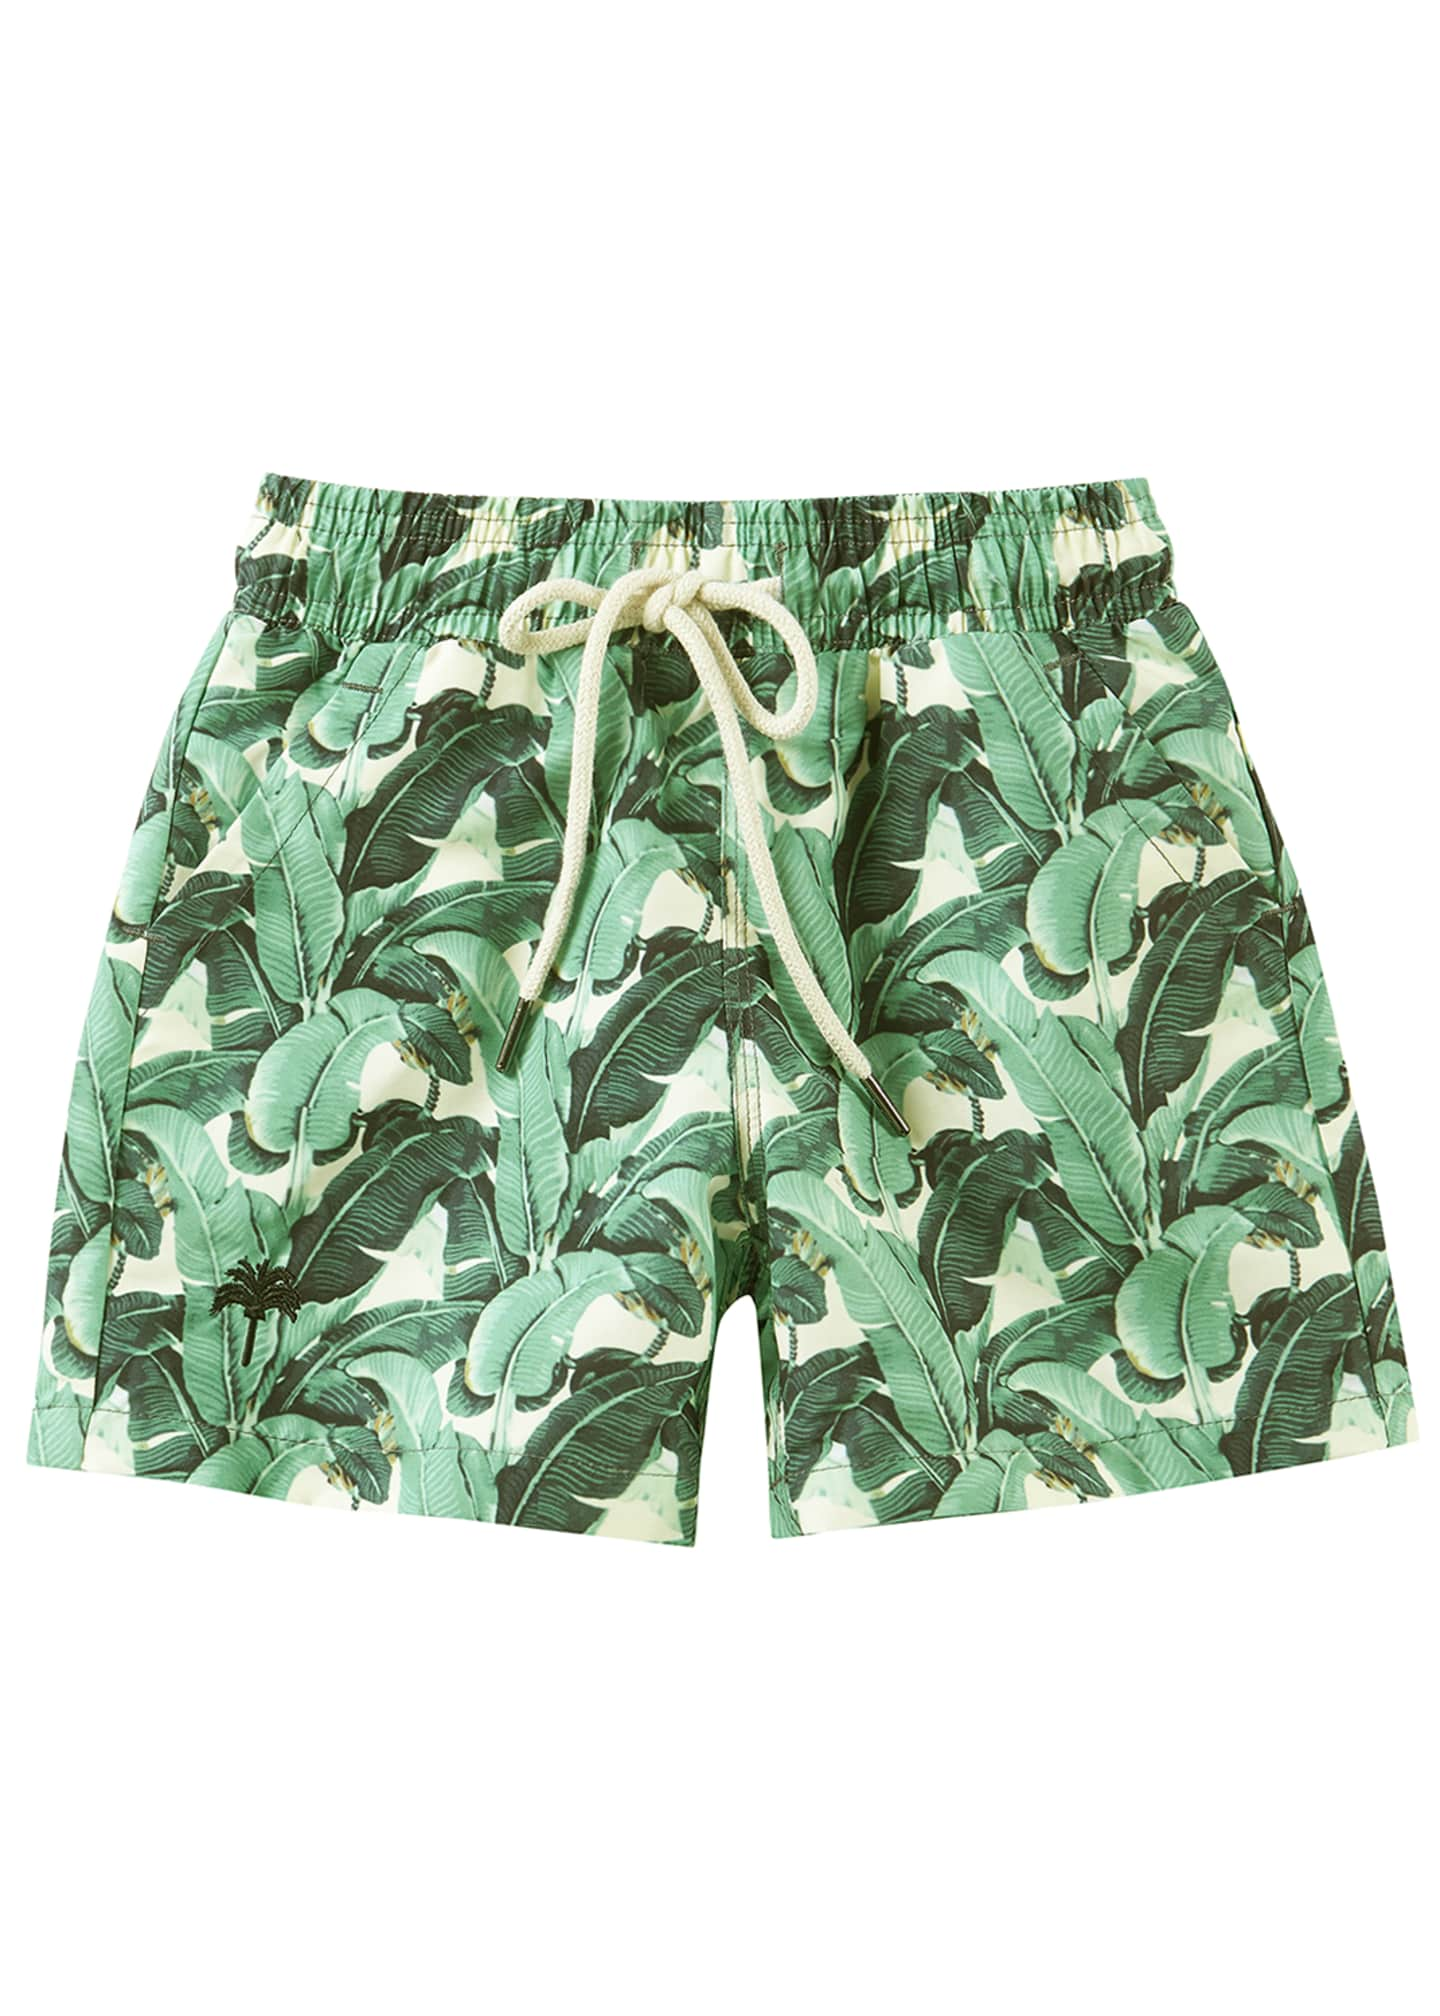 OAS Kid's Banana Leaf Print Drawstring Swim Trunks,